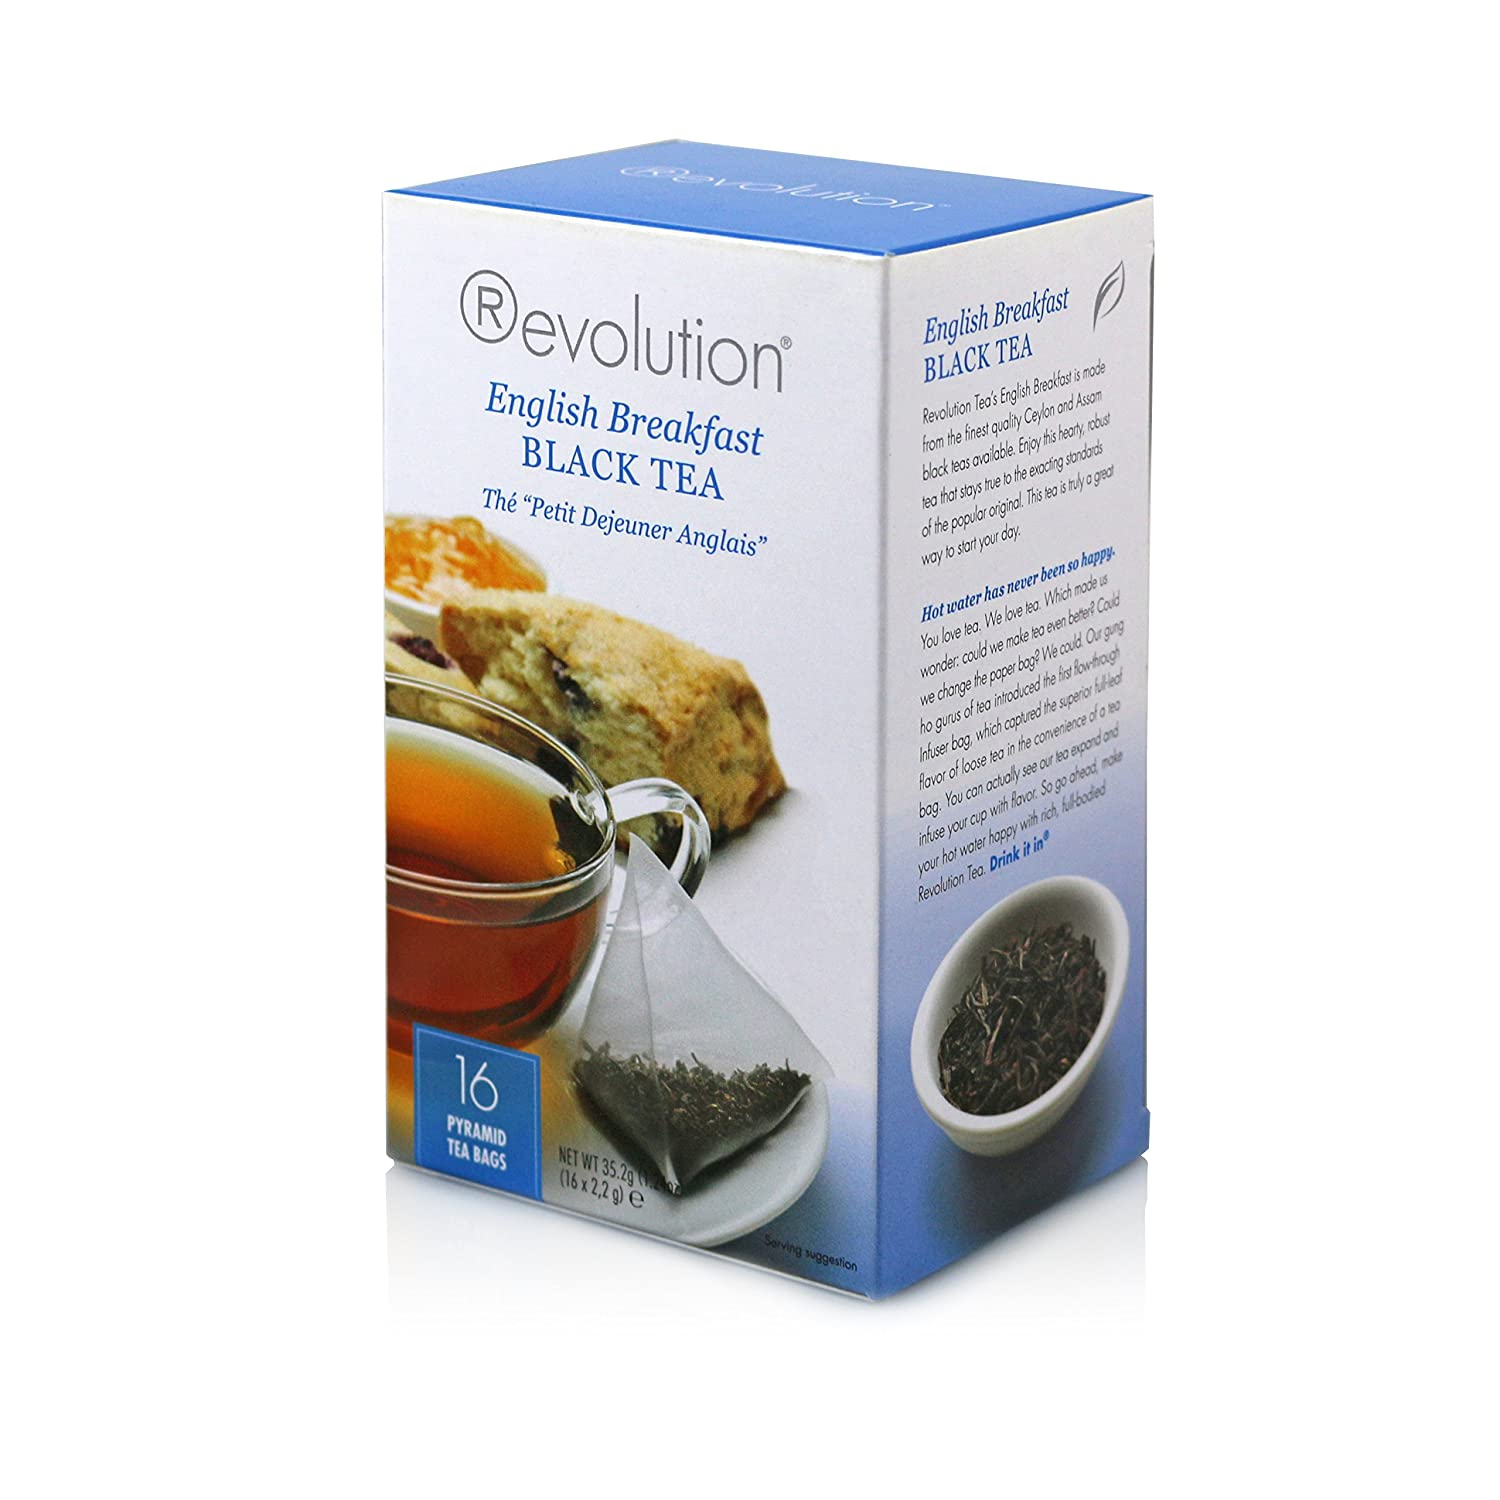 Revolution English Breakfast Tea 16ct